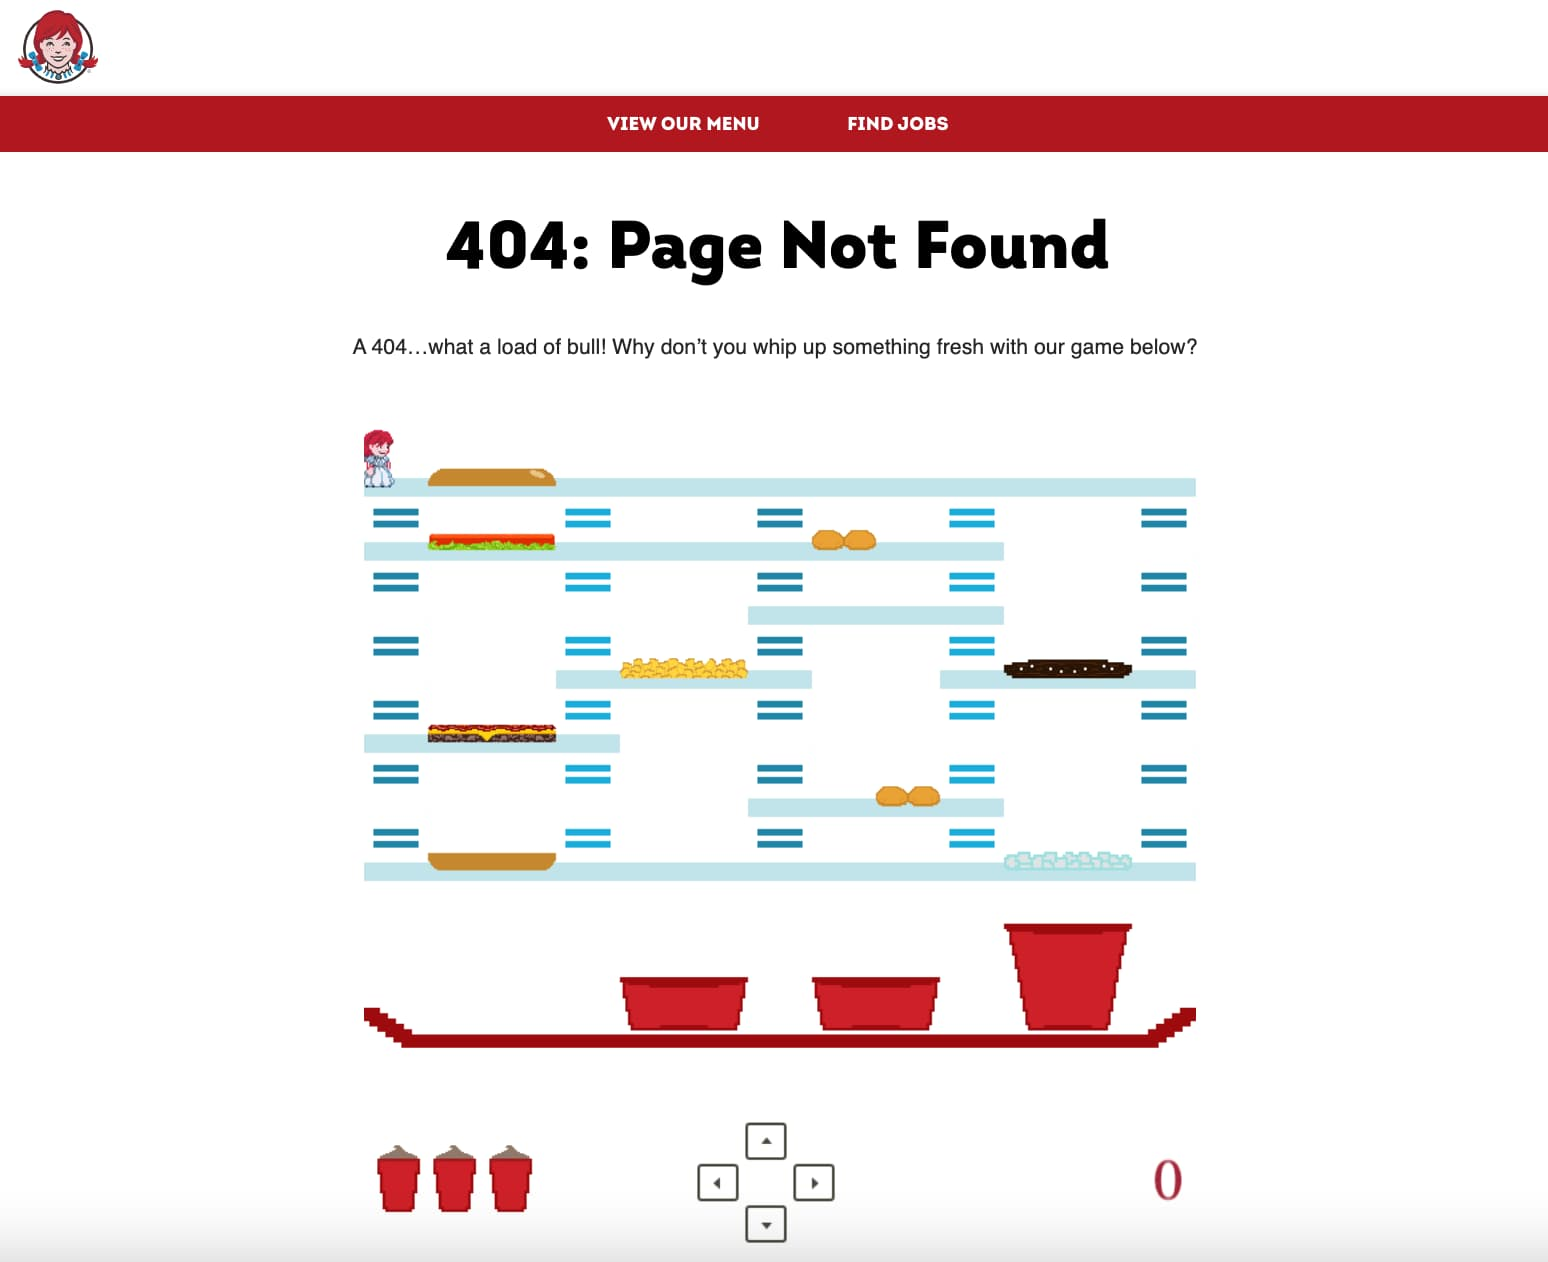 Wendy's 404 page displaying the page not found error message in a fun and interactive way.